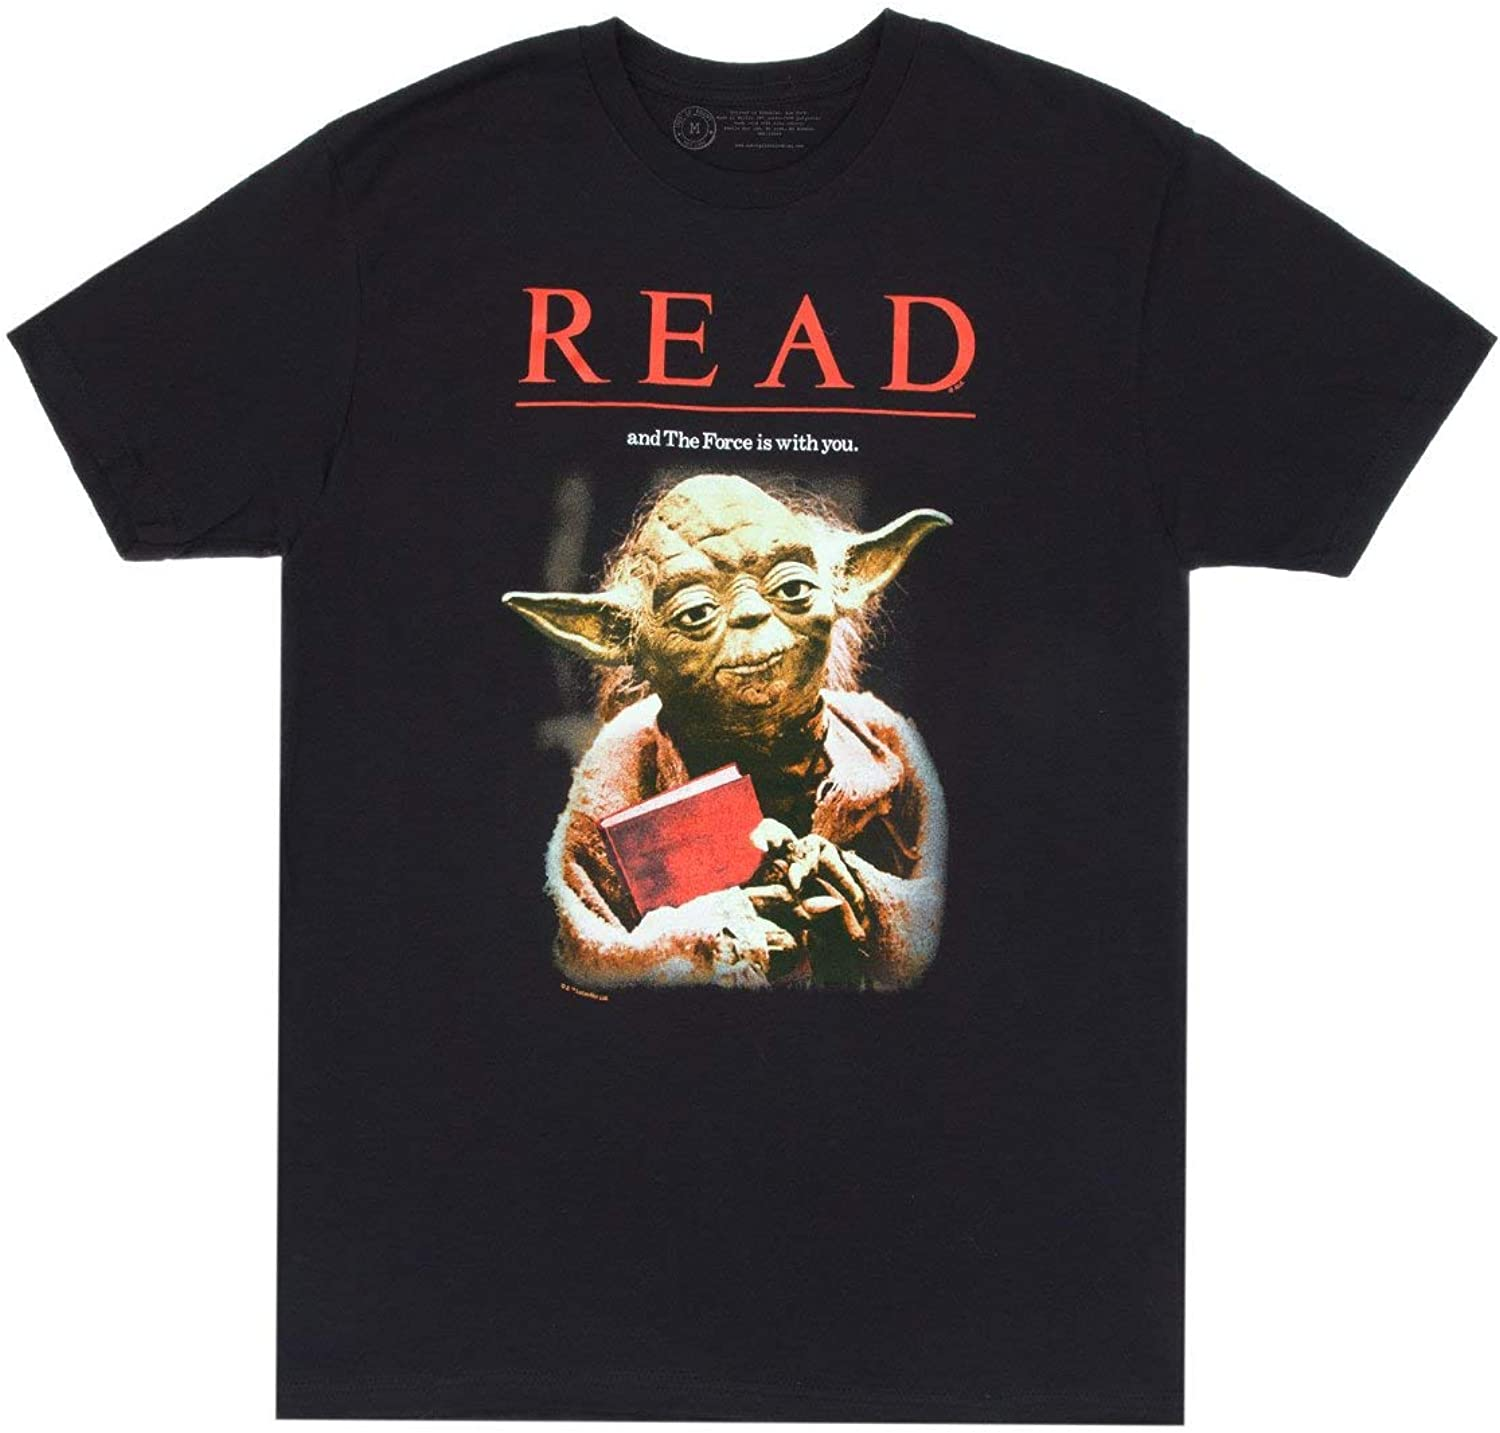 Out of Print Unisex/Men's Science Fiction and Fantasy Book-Themed Tee T-Shirt